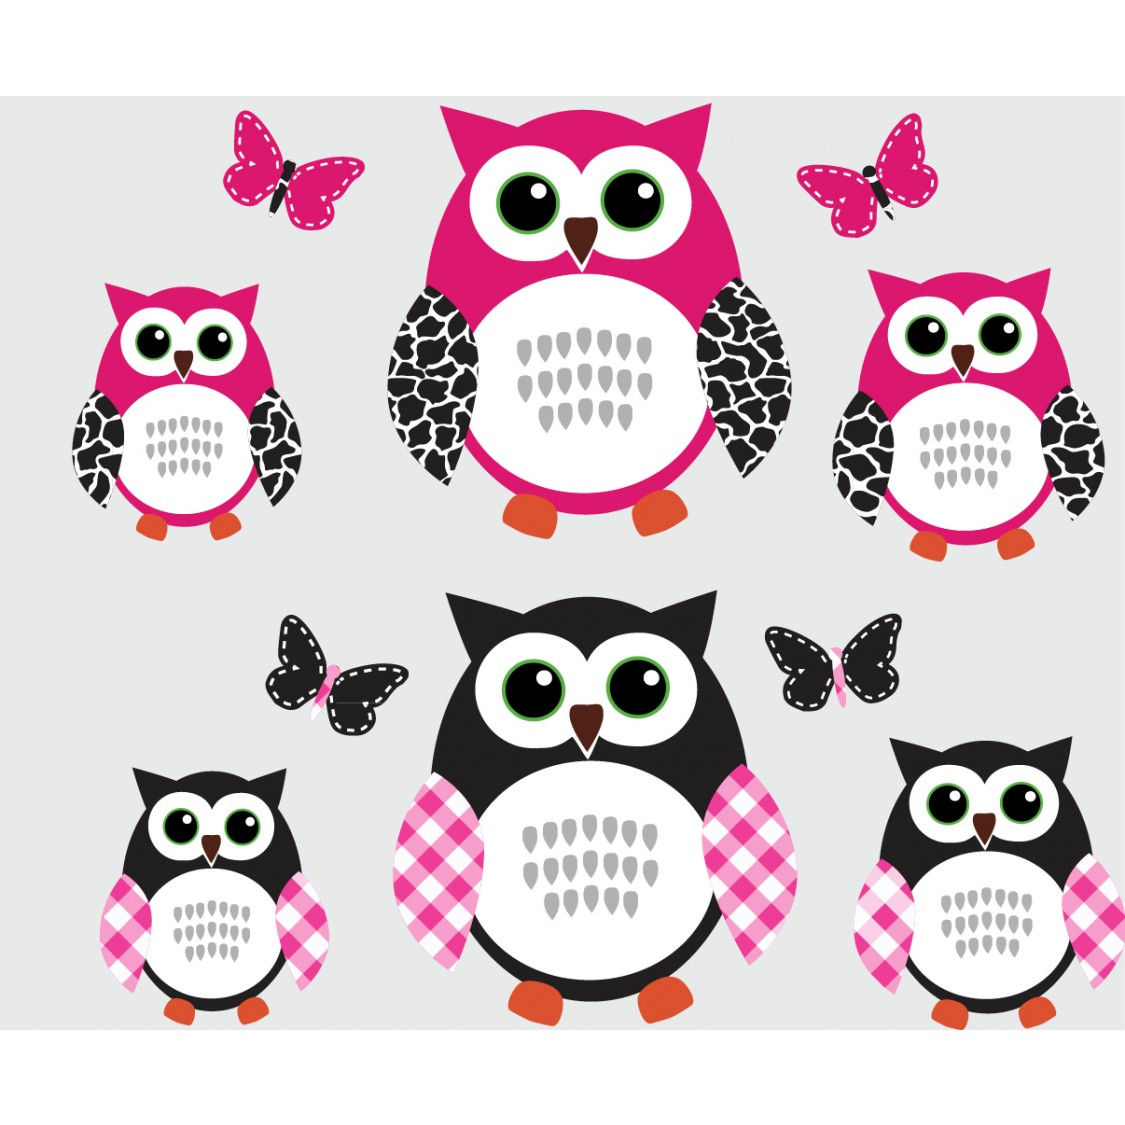 Pink and Black Owl Wall Art With Butterfly Decals For Walls For Girls